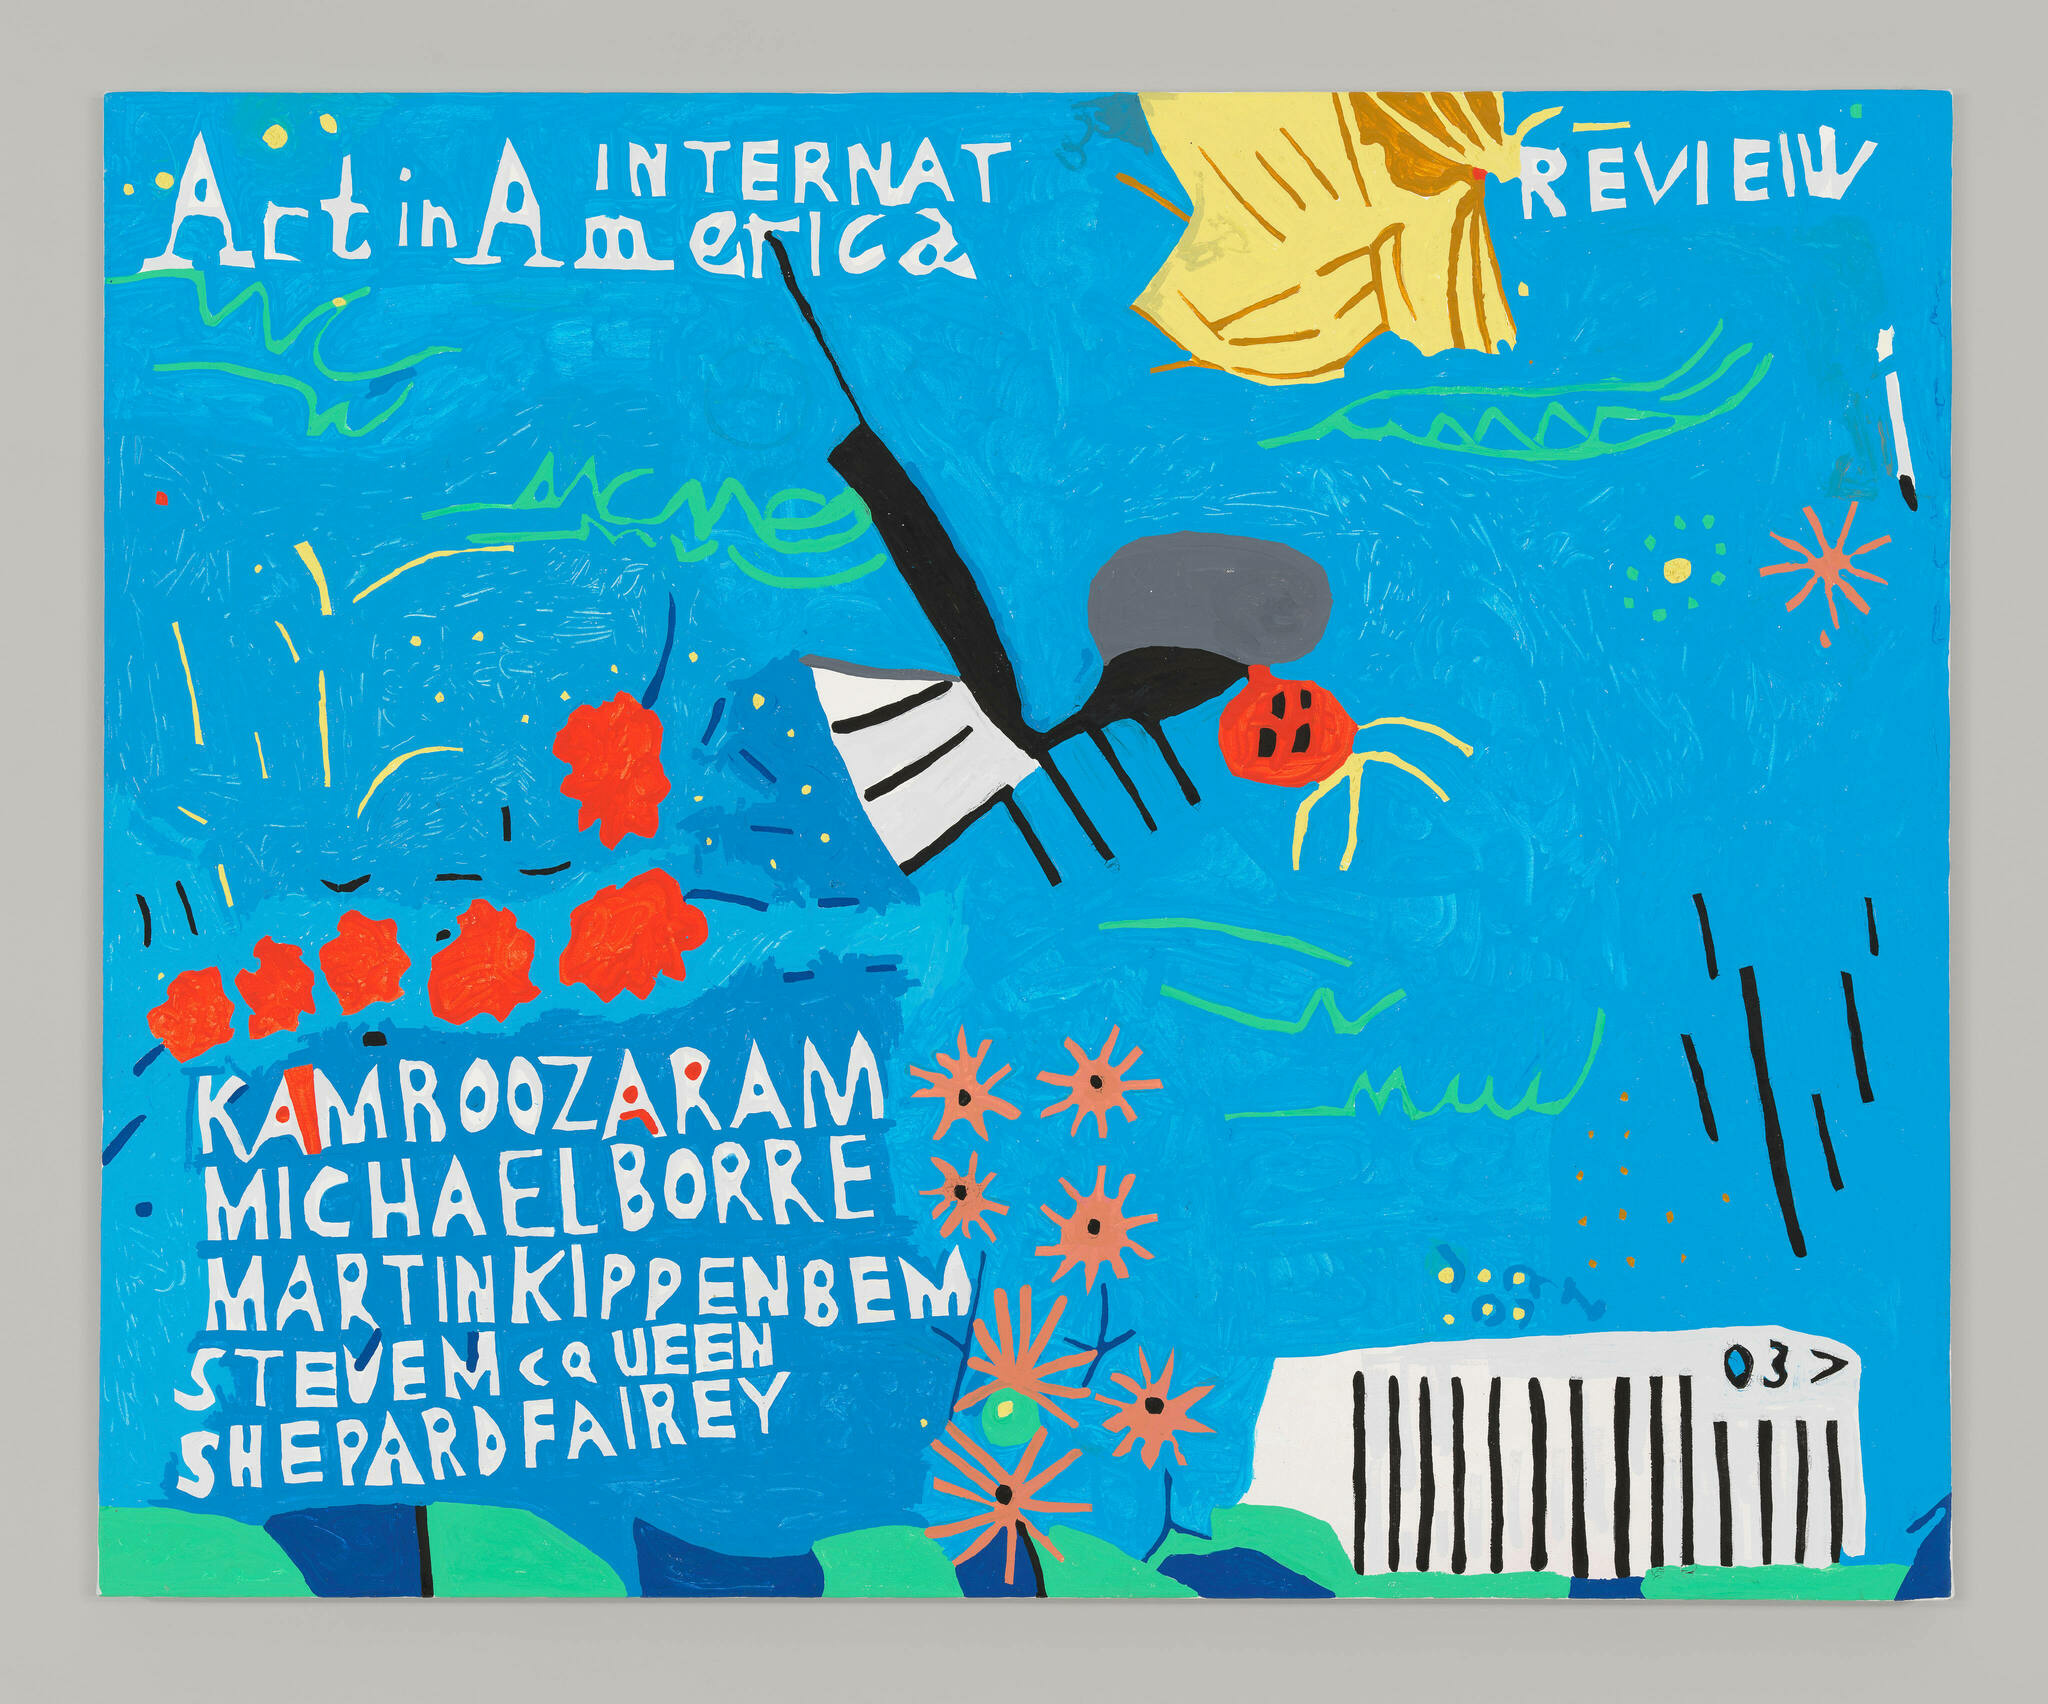 A cover of Art in America with a blue background and details abstracted into organic shapes, including gear-like orange flowers, red blobs, and curving green lines.